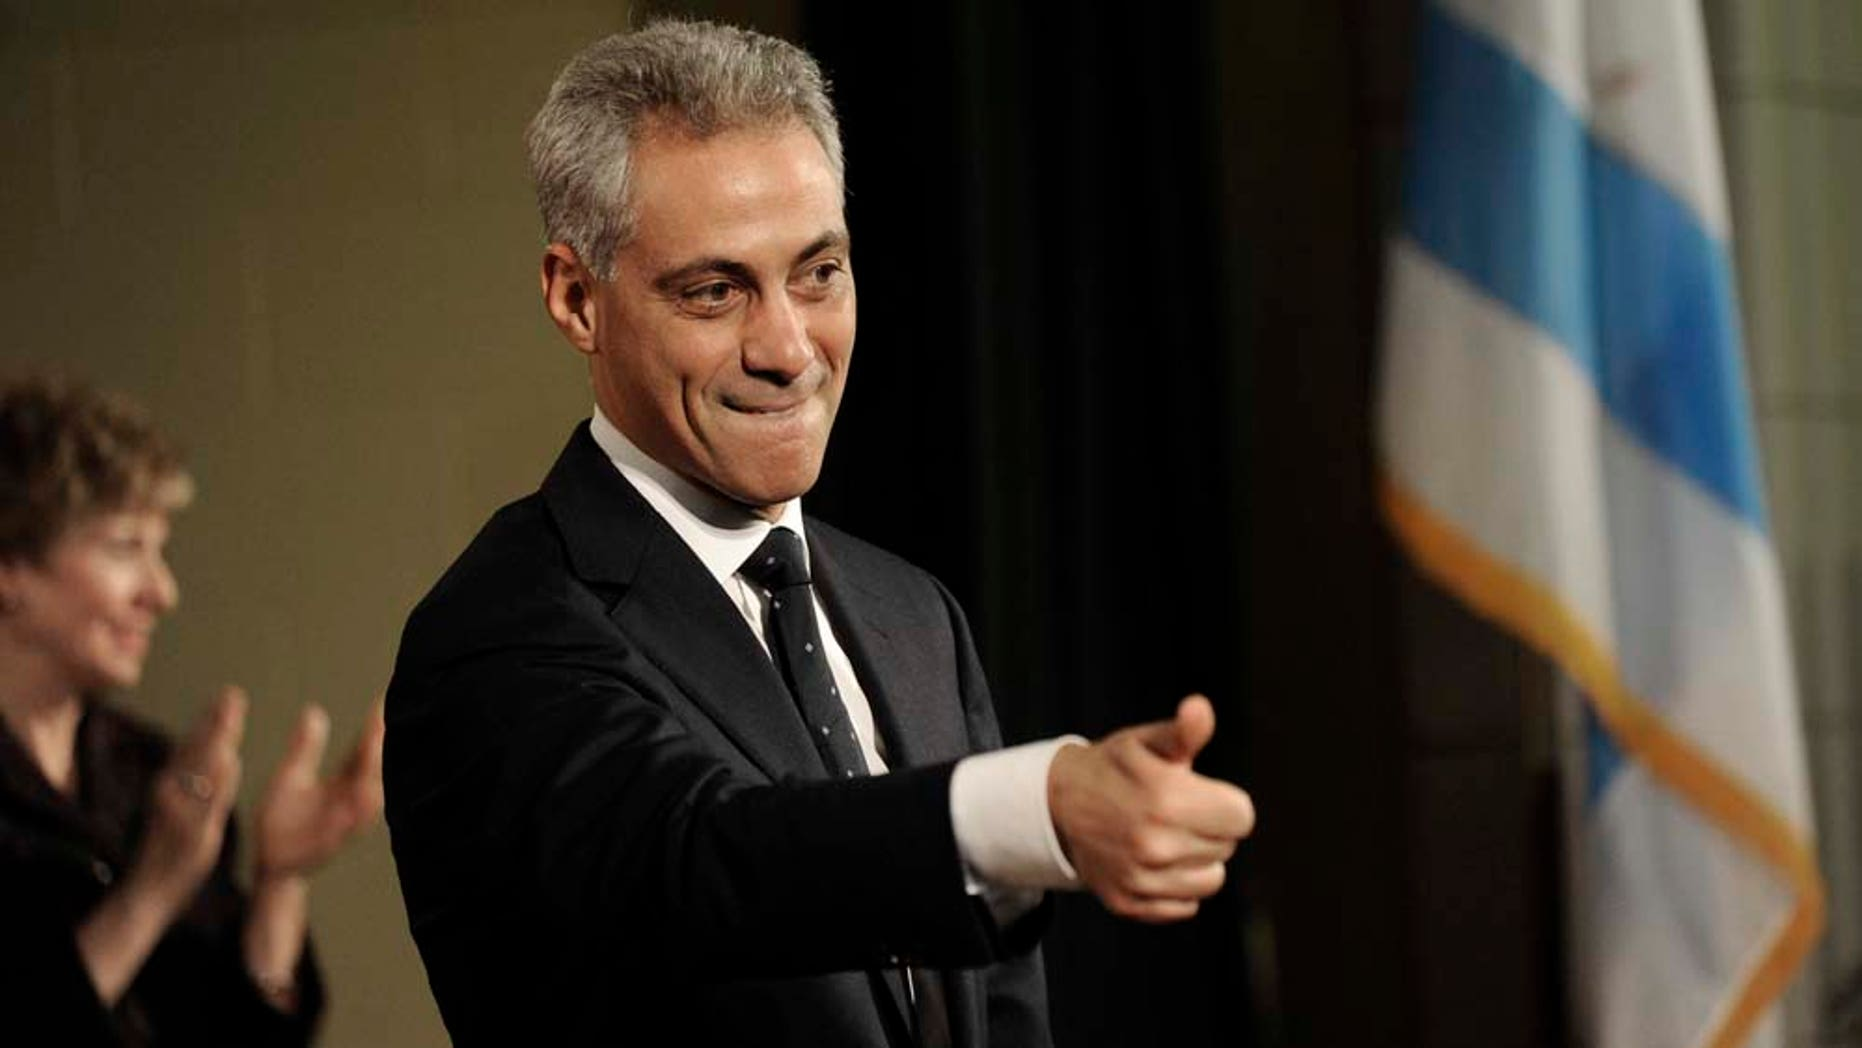 Rahm Emanuel announces his candidacy for Mayor of Chicago at the John C. Coonley School in Chicago, Saturday, Nov. 13, 2010. (AP Photo/Paul Beaty)   Rahm Emanuel announcing his candidacy for Mayor of Chicago at the John C. Coonley School in Chicago, Saturday,  Nov. 13, 2010. (AP Photo/ Paul Beaty)   Rahm Emanuel announcing his candidacy for Mayor of Chicago at the John C. Coonley School in Chicago, Saturday,  Nov. 13, 2010. (AP Photo/ Paul Beaty)